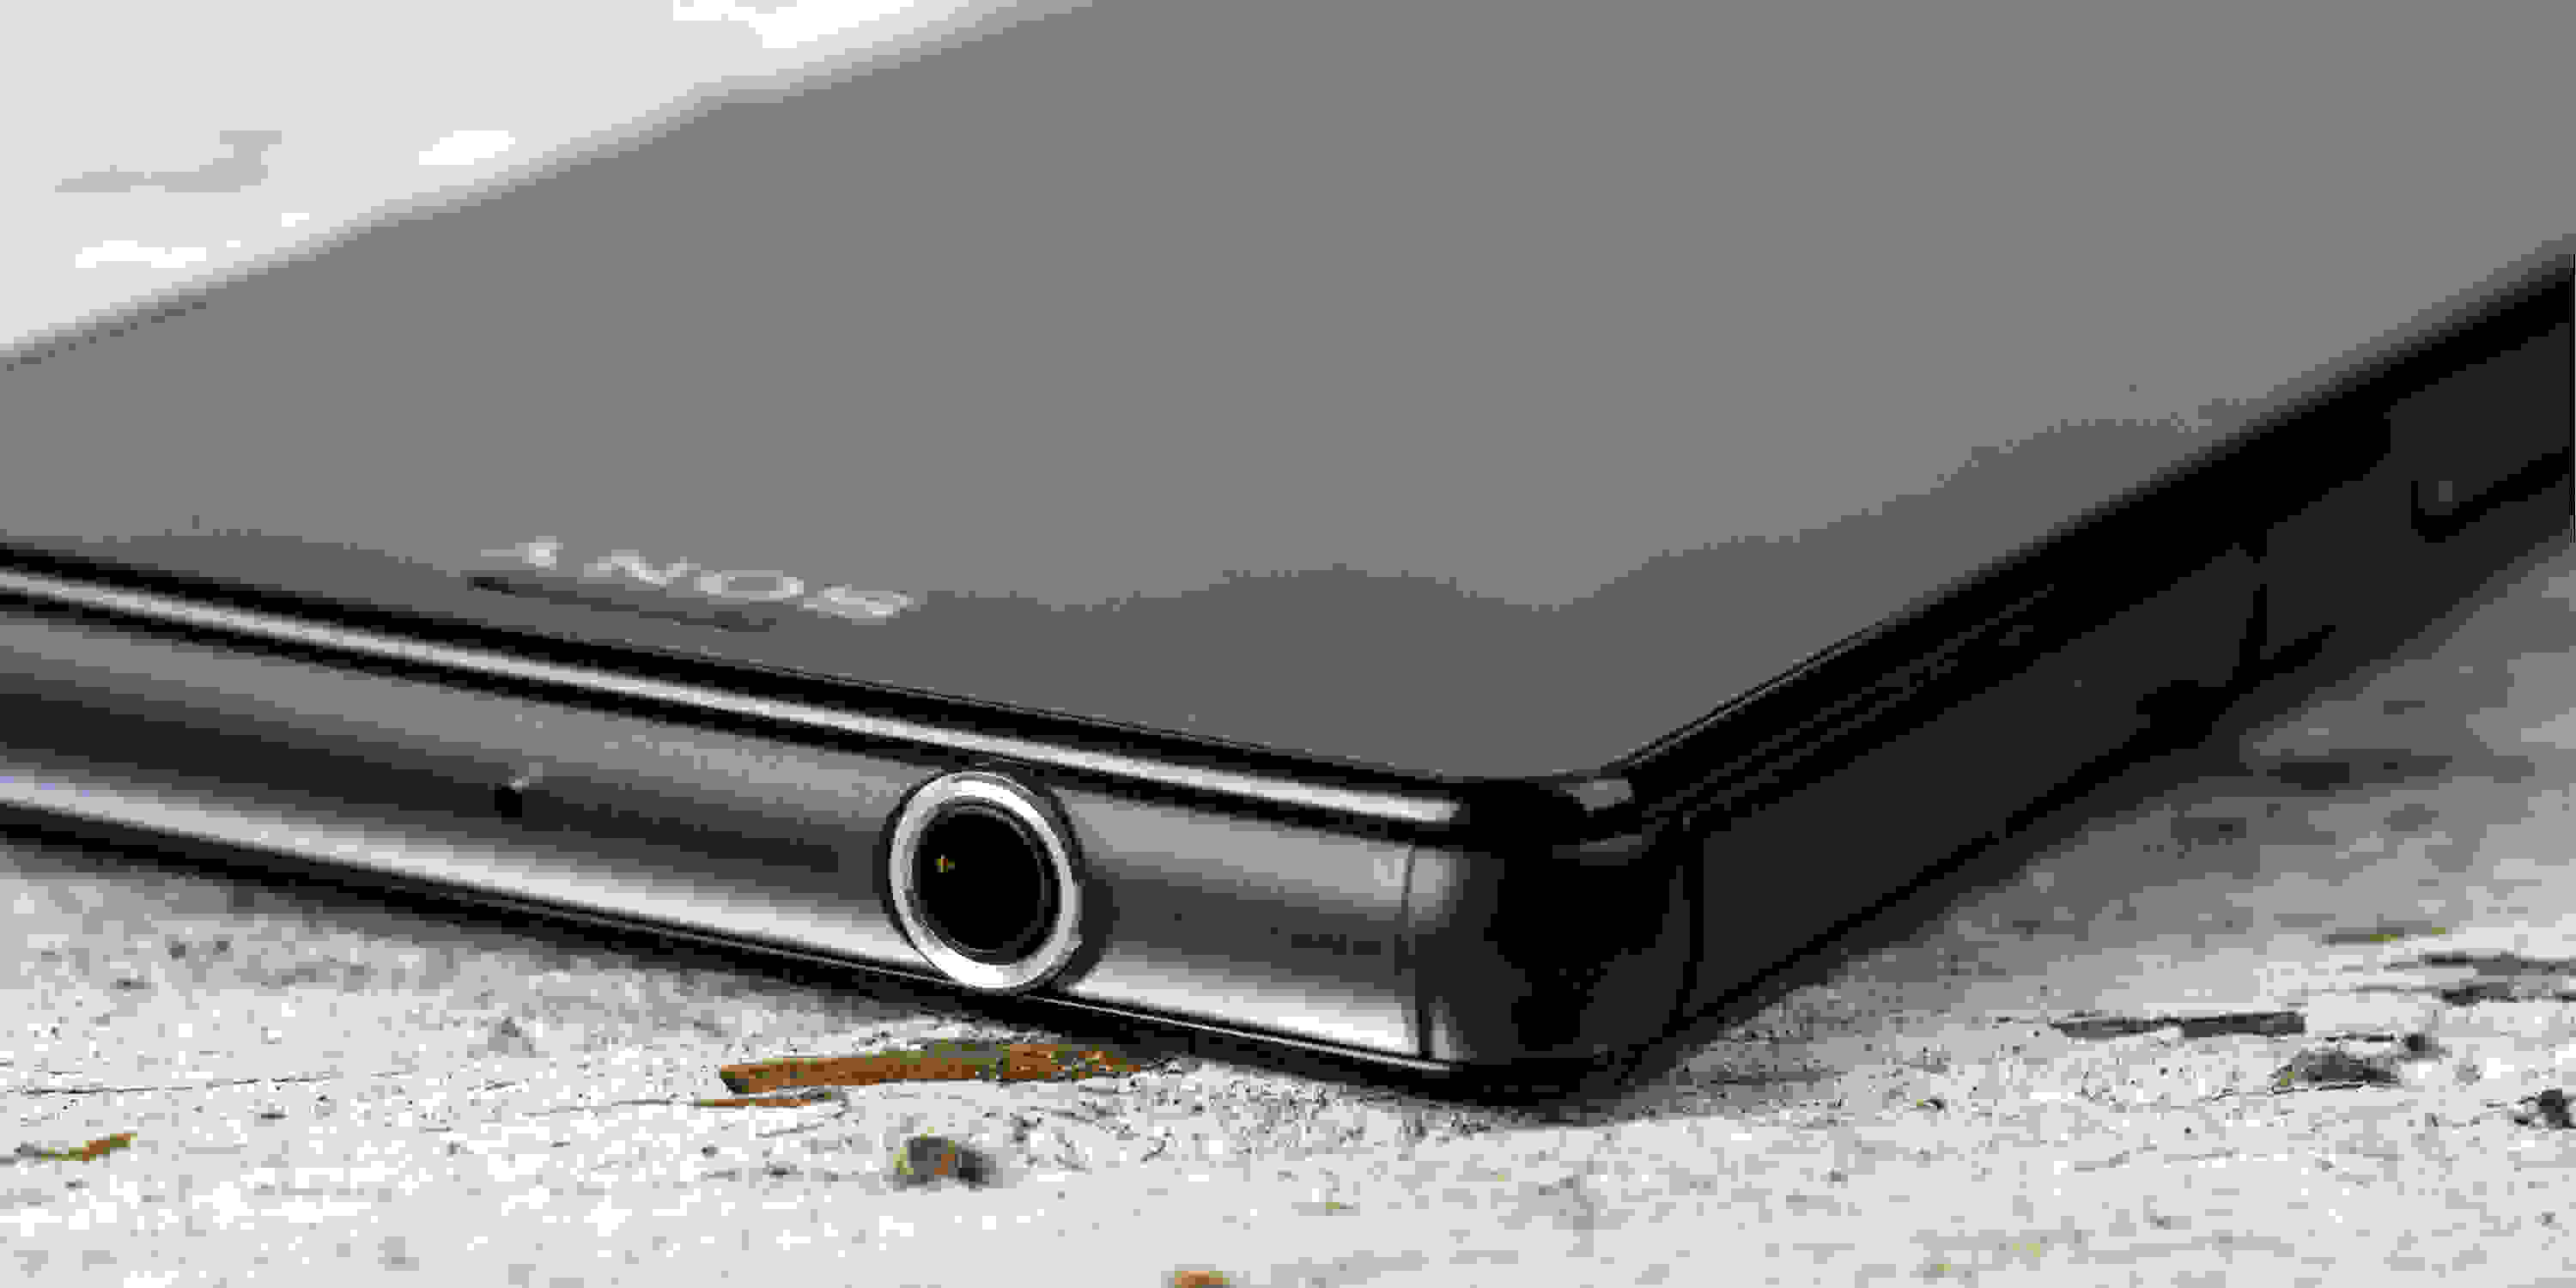 A photograph of the Sony Xperia Z3 Compact's headphone jack.